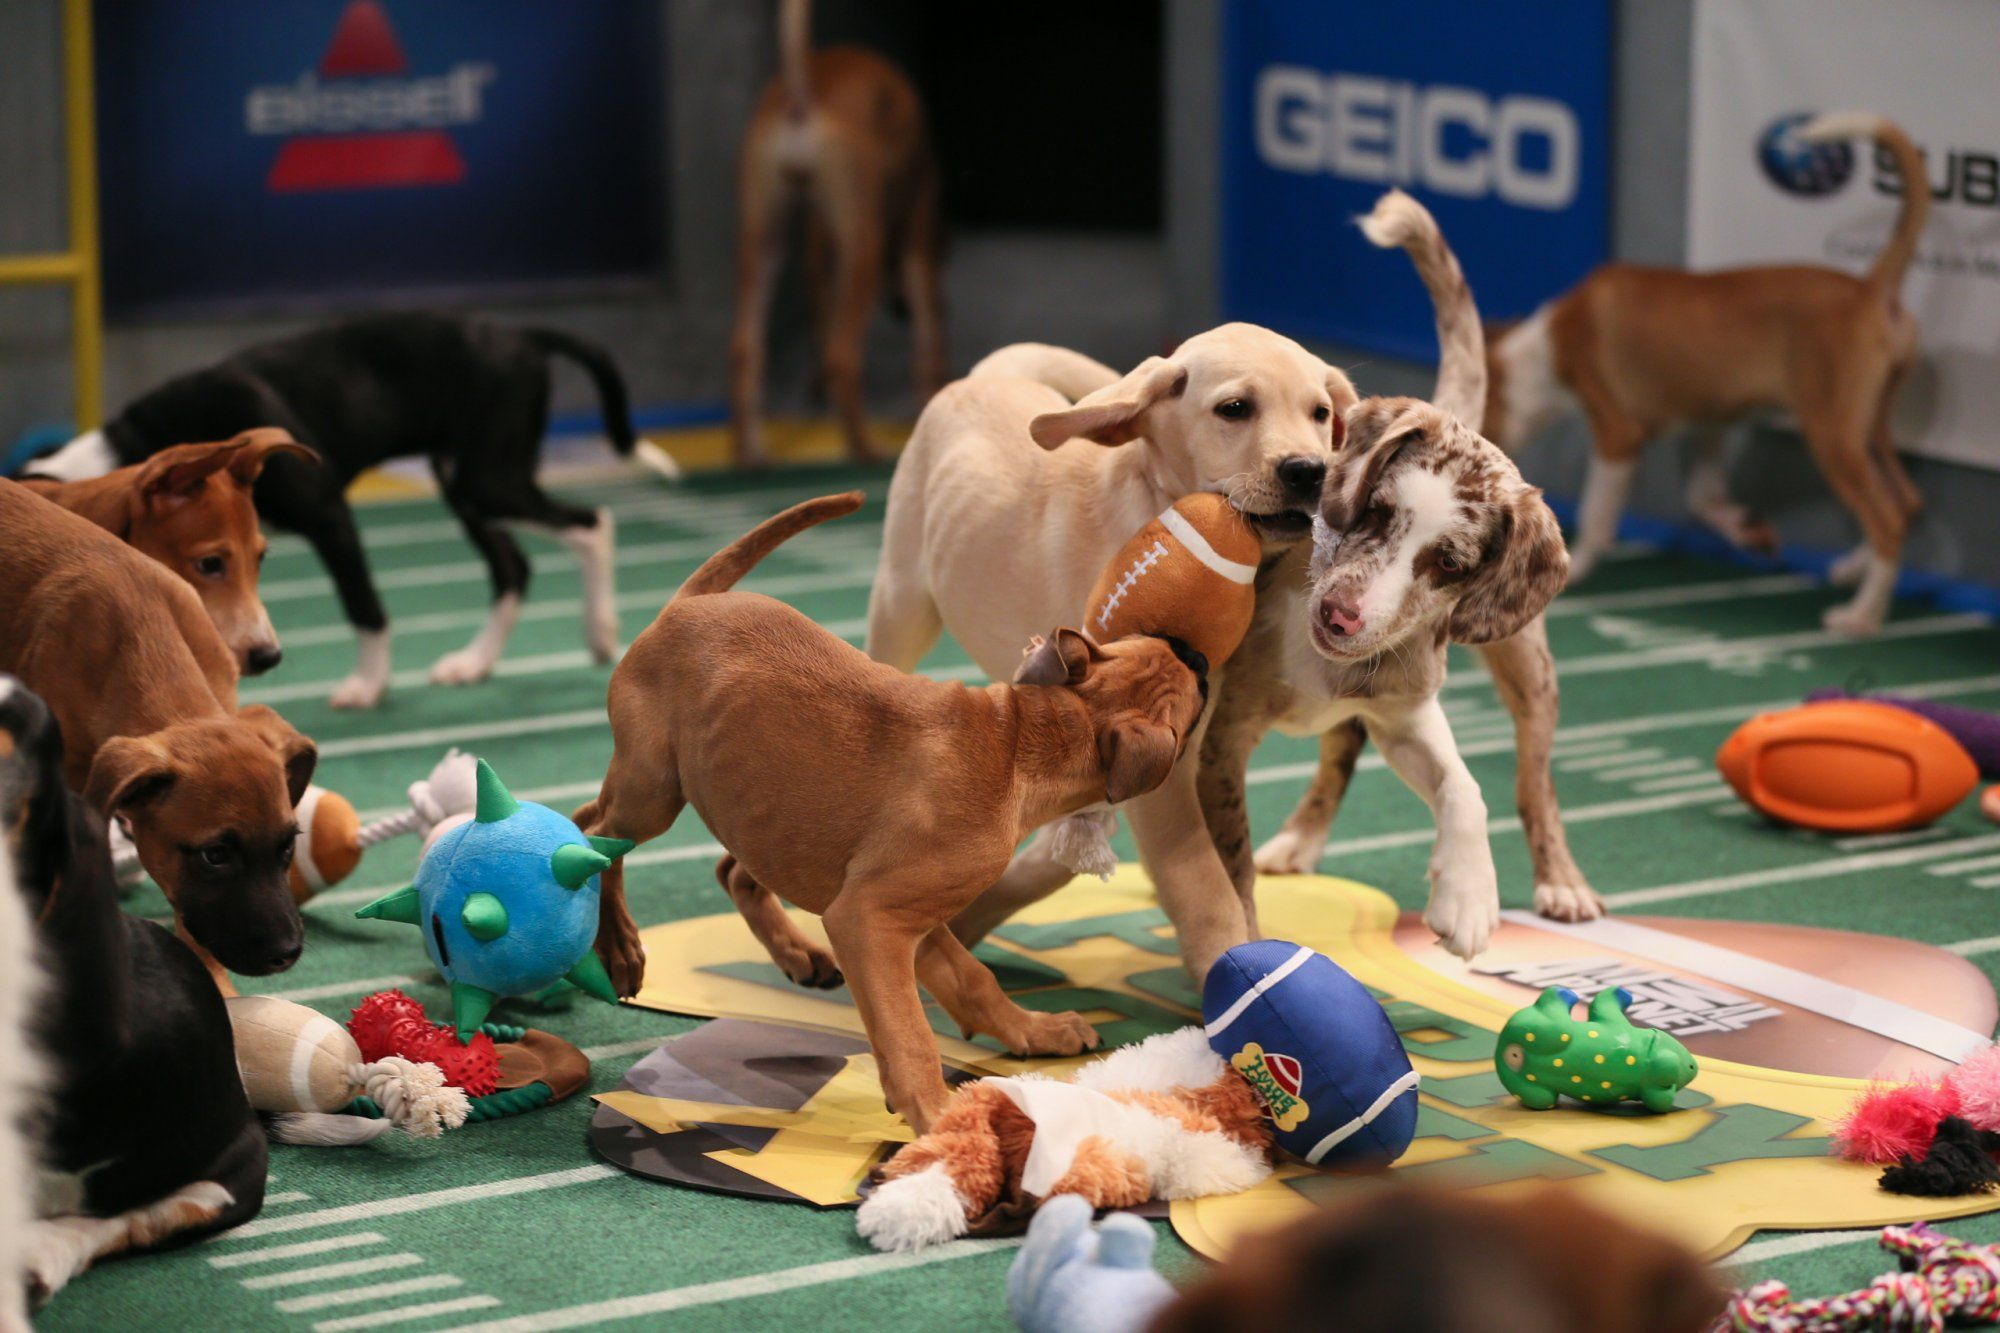 The Puppy Bowl The Super Bowl S Fiercest Rival Puppy Bowls Puppies Kitten Bowls